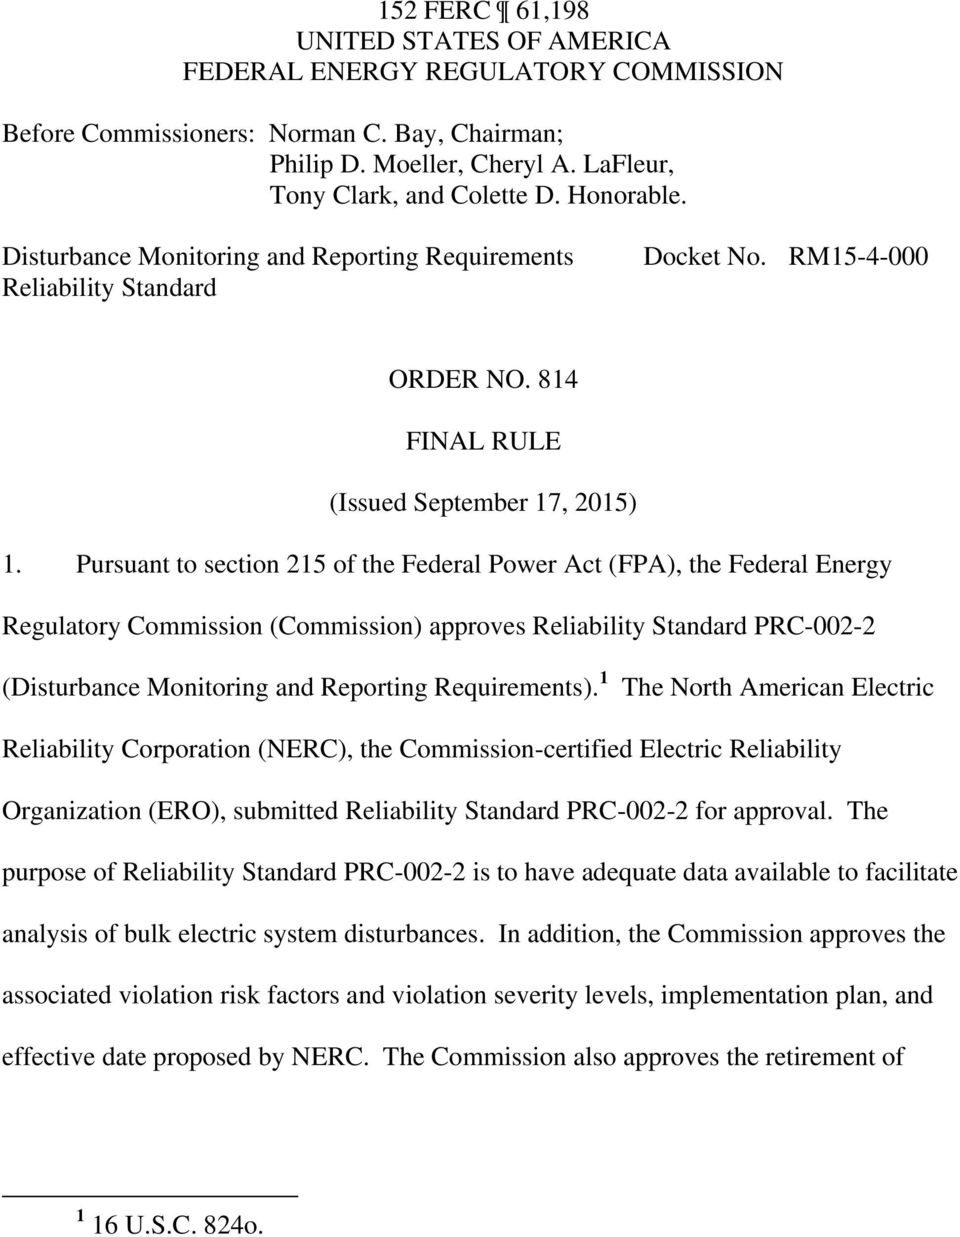 Pursuant to section 215 of the Federal Power Act (FPA), the Federal Energy Regulatory Commission (Commission) approves Reliability Standard PRC-002-2 (Disturbance Monitoring and Reporting